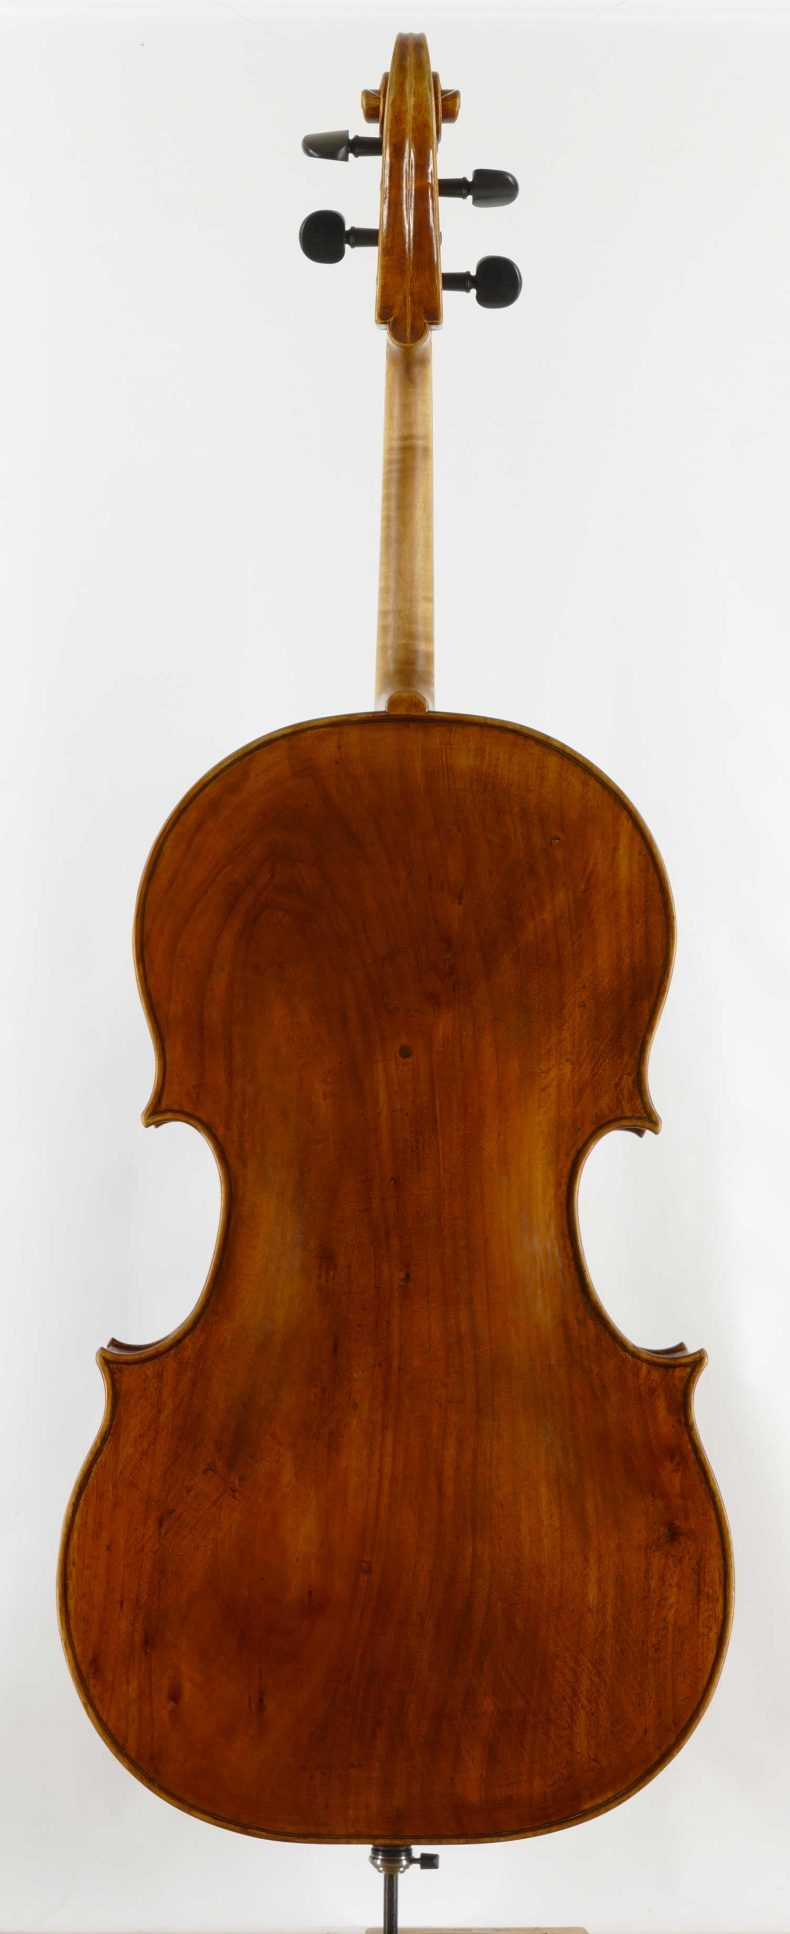 carruthers-cello-1668-back